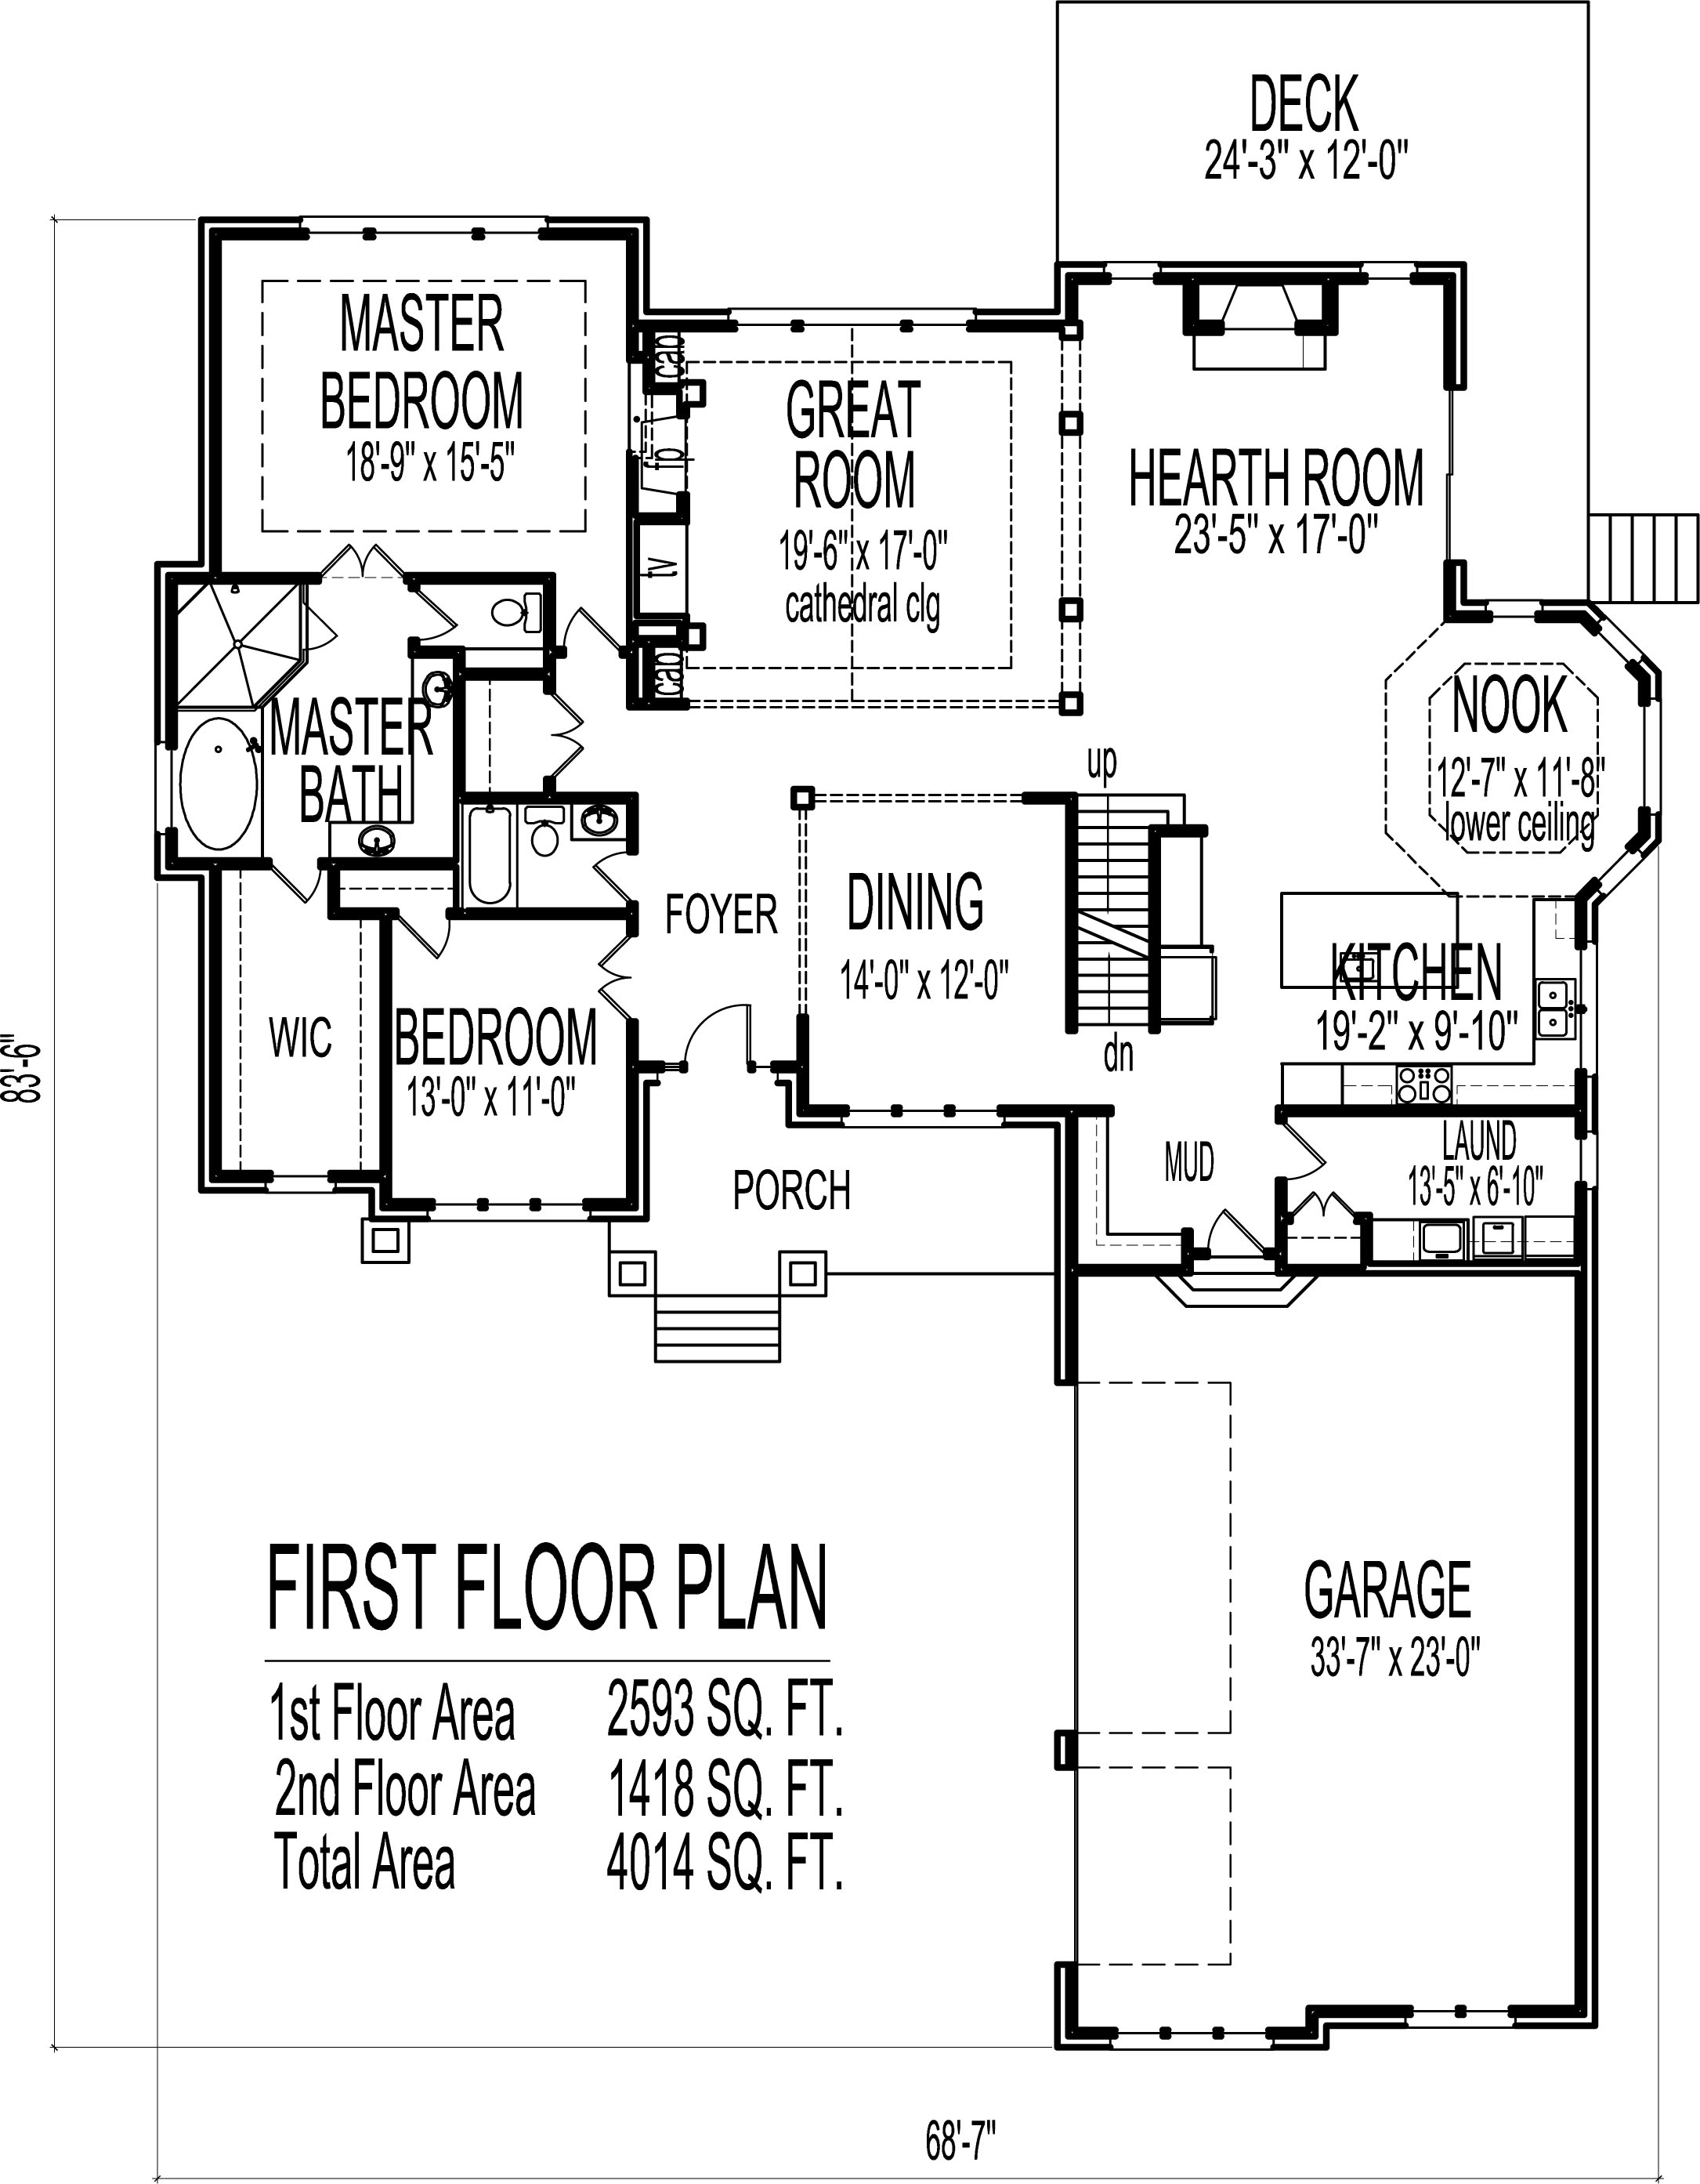 2 story house floor plans 6 bedroom craftsman home design for 6 bedroom house floor plans